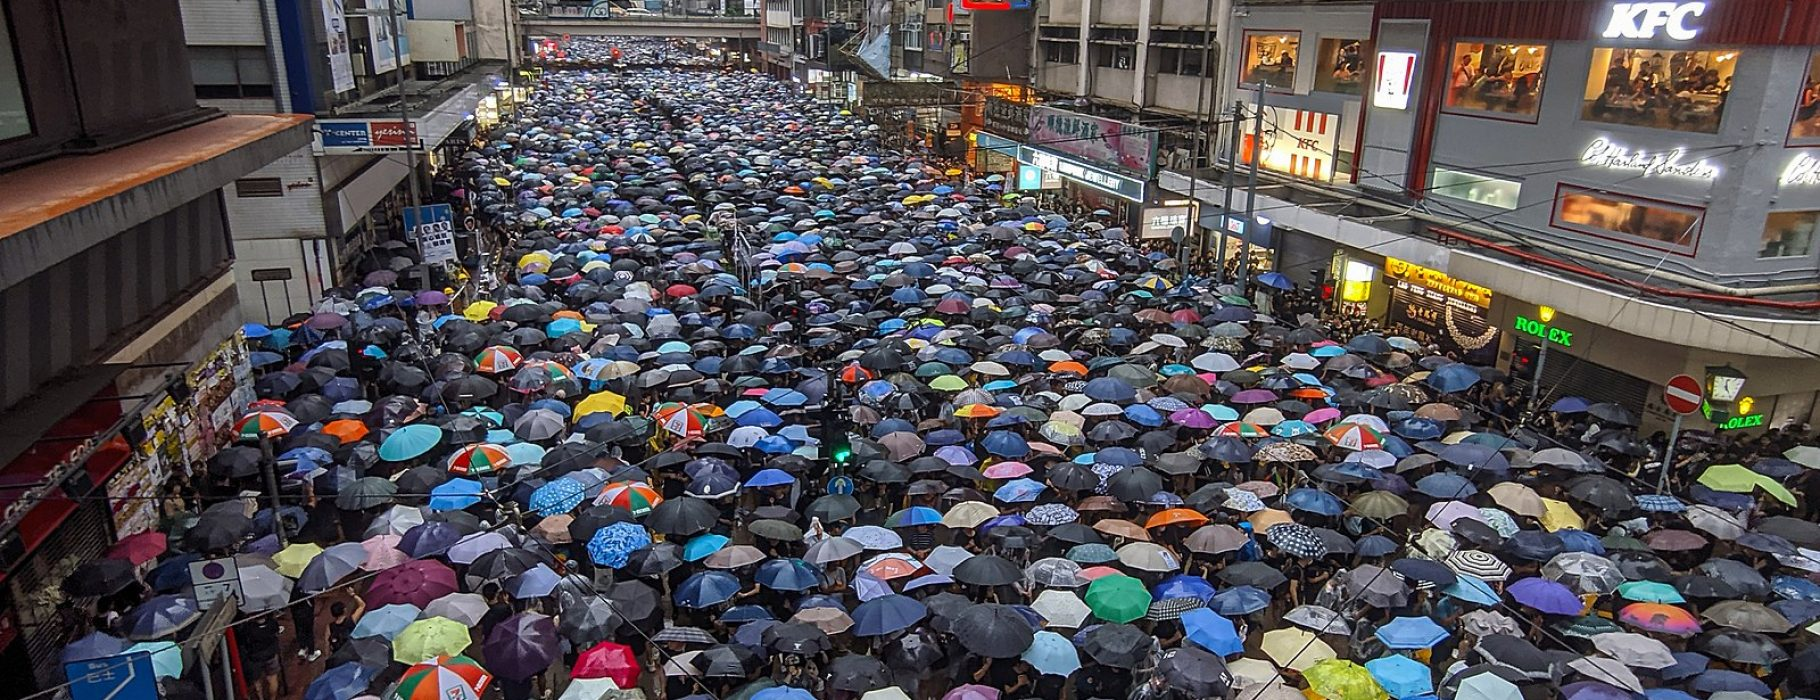 1600px-Hong_Kong_protests_-_IMG_20190818_165749